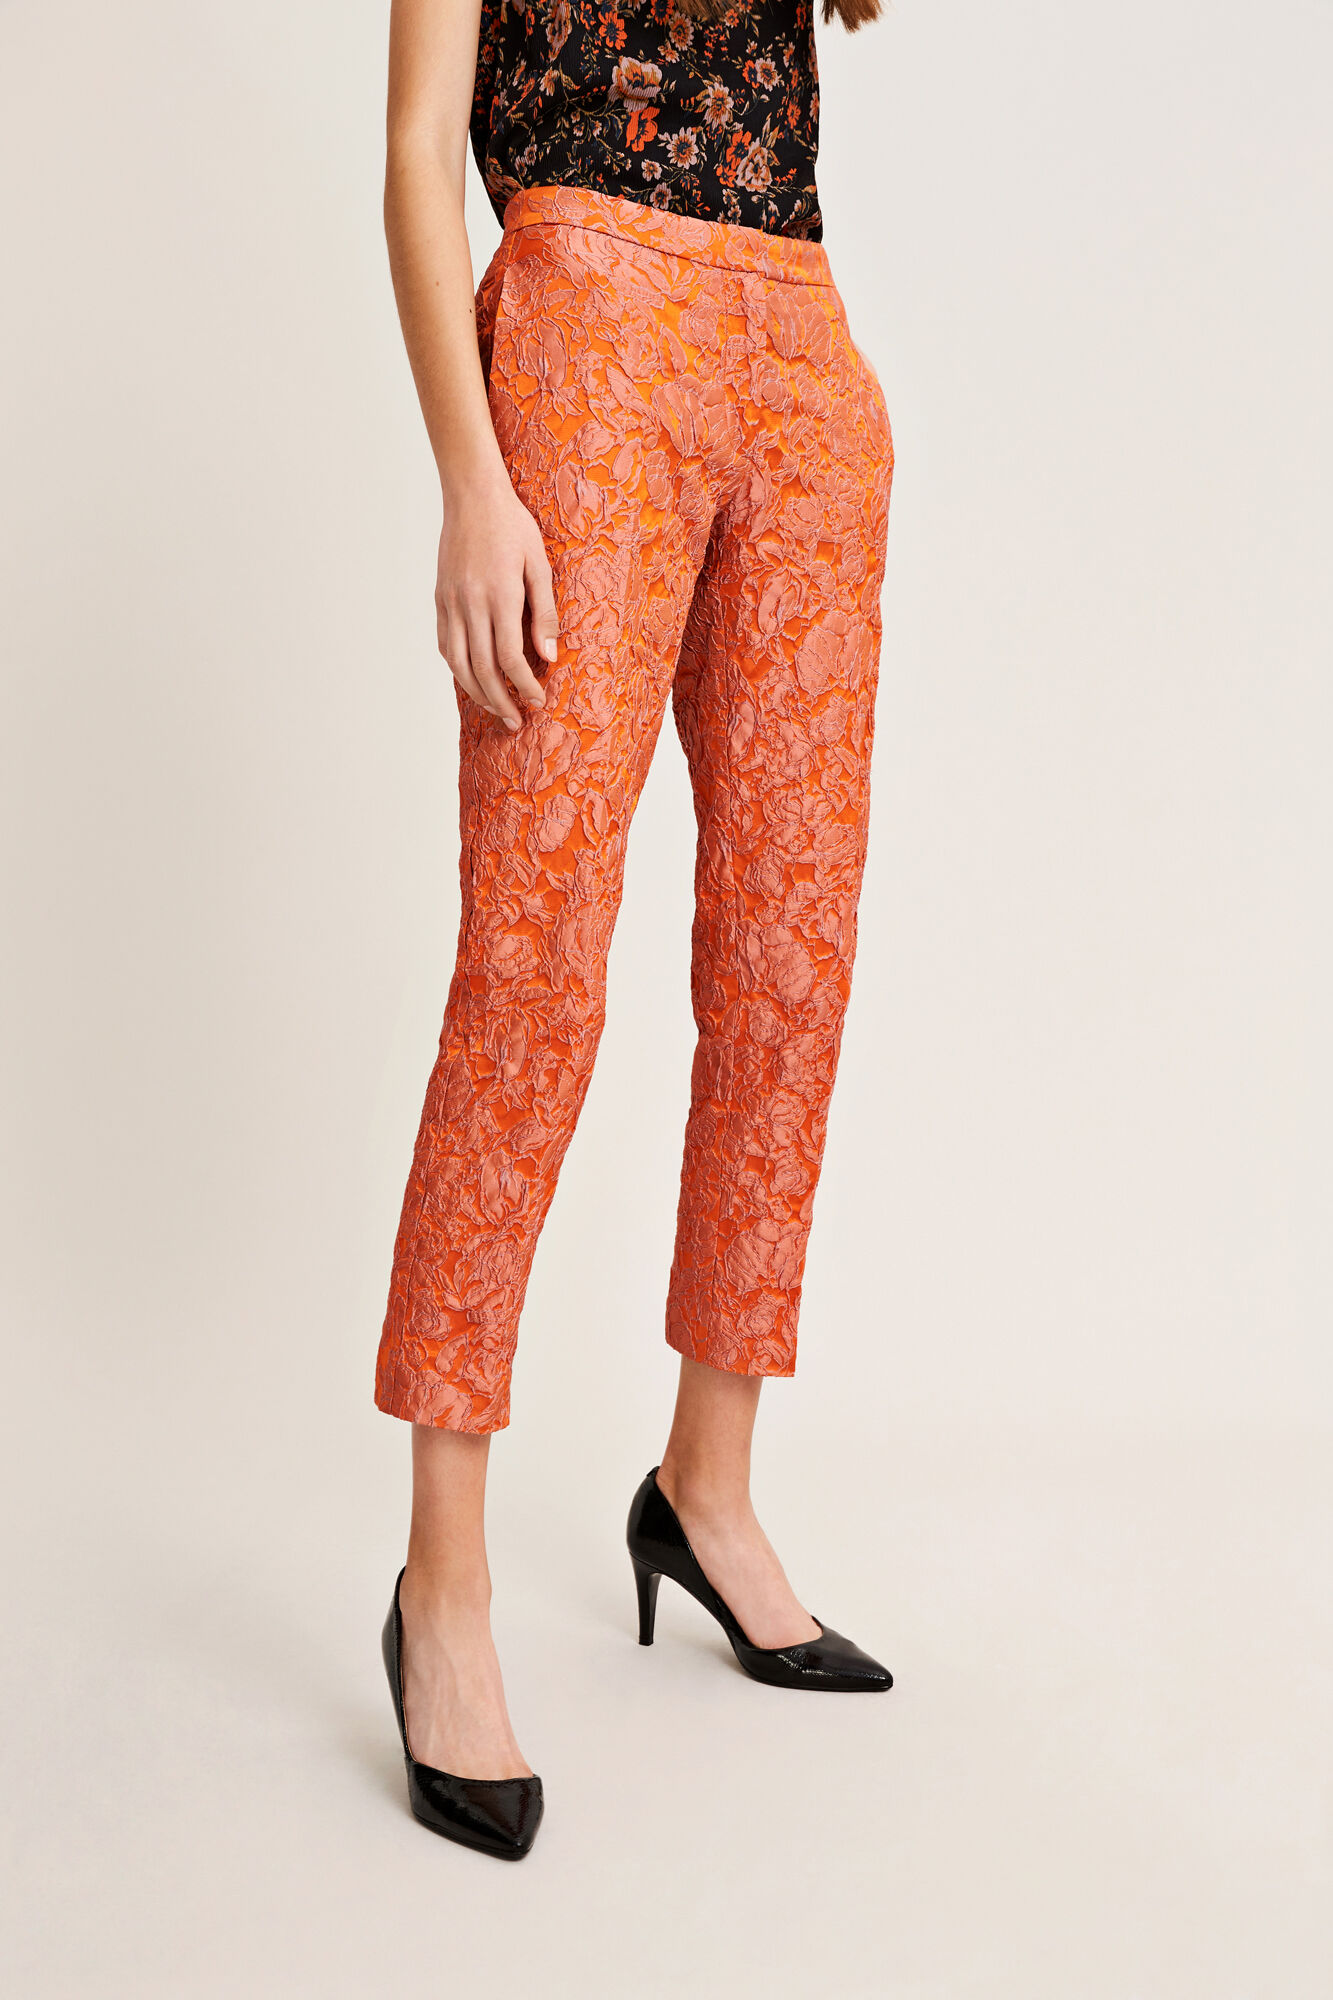 Cybill pants 9712, PUFFINS ROSE